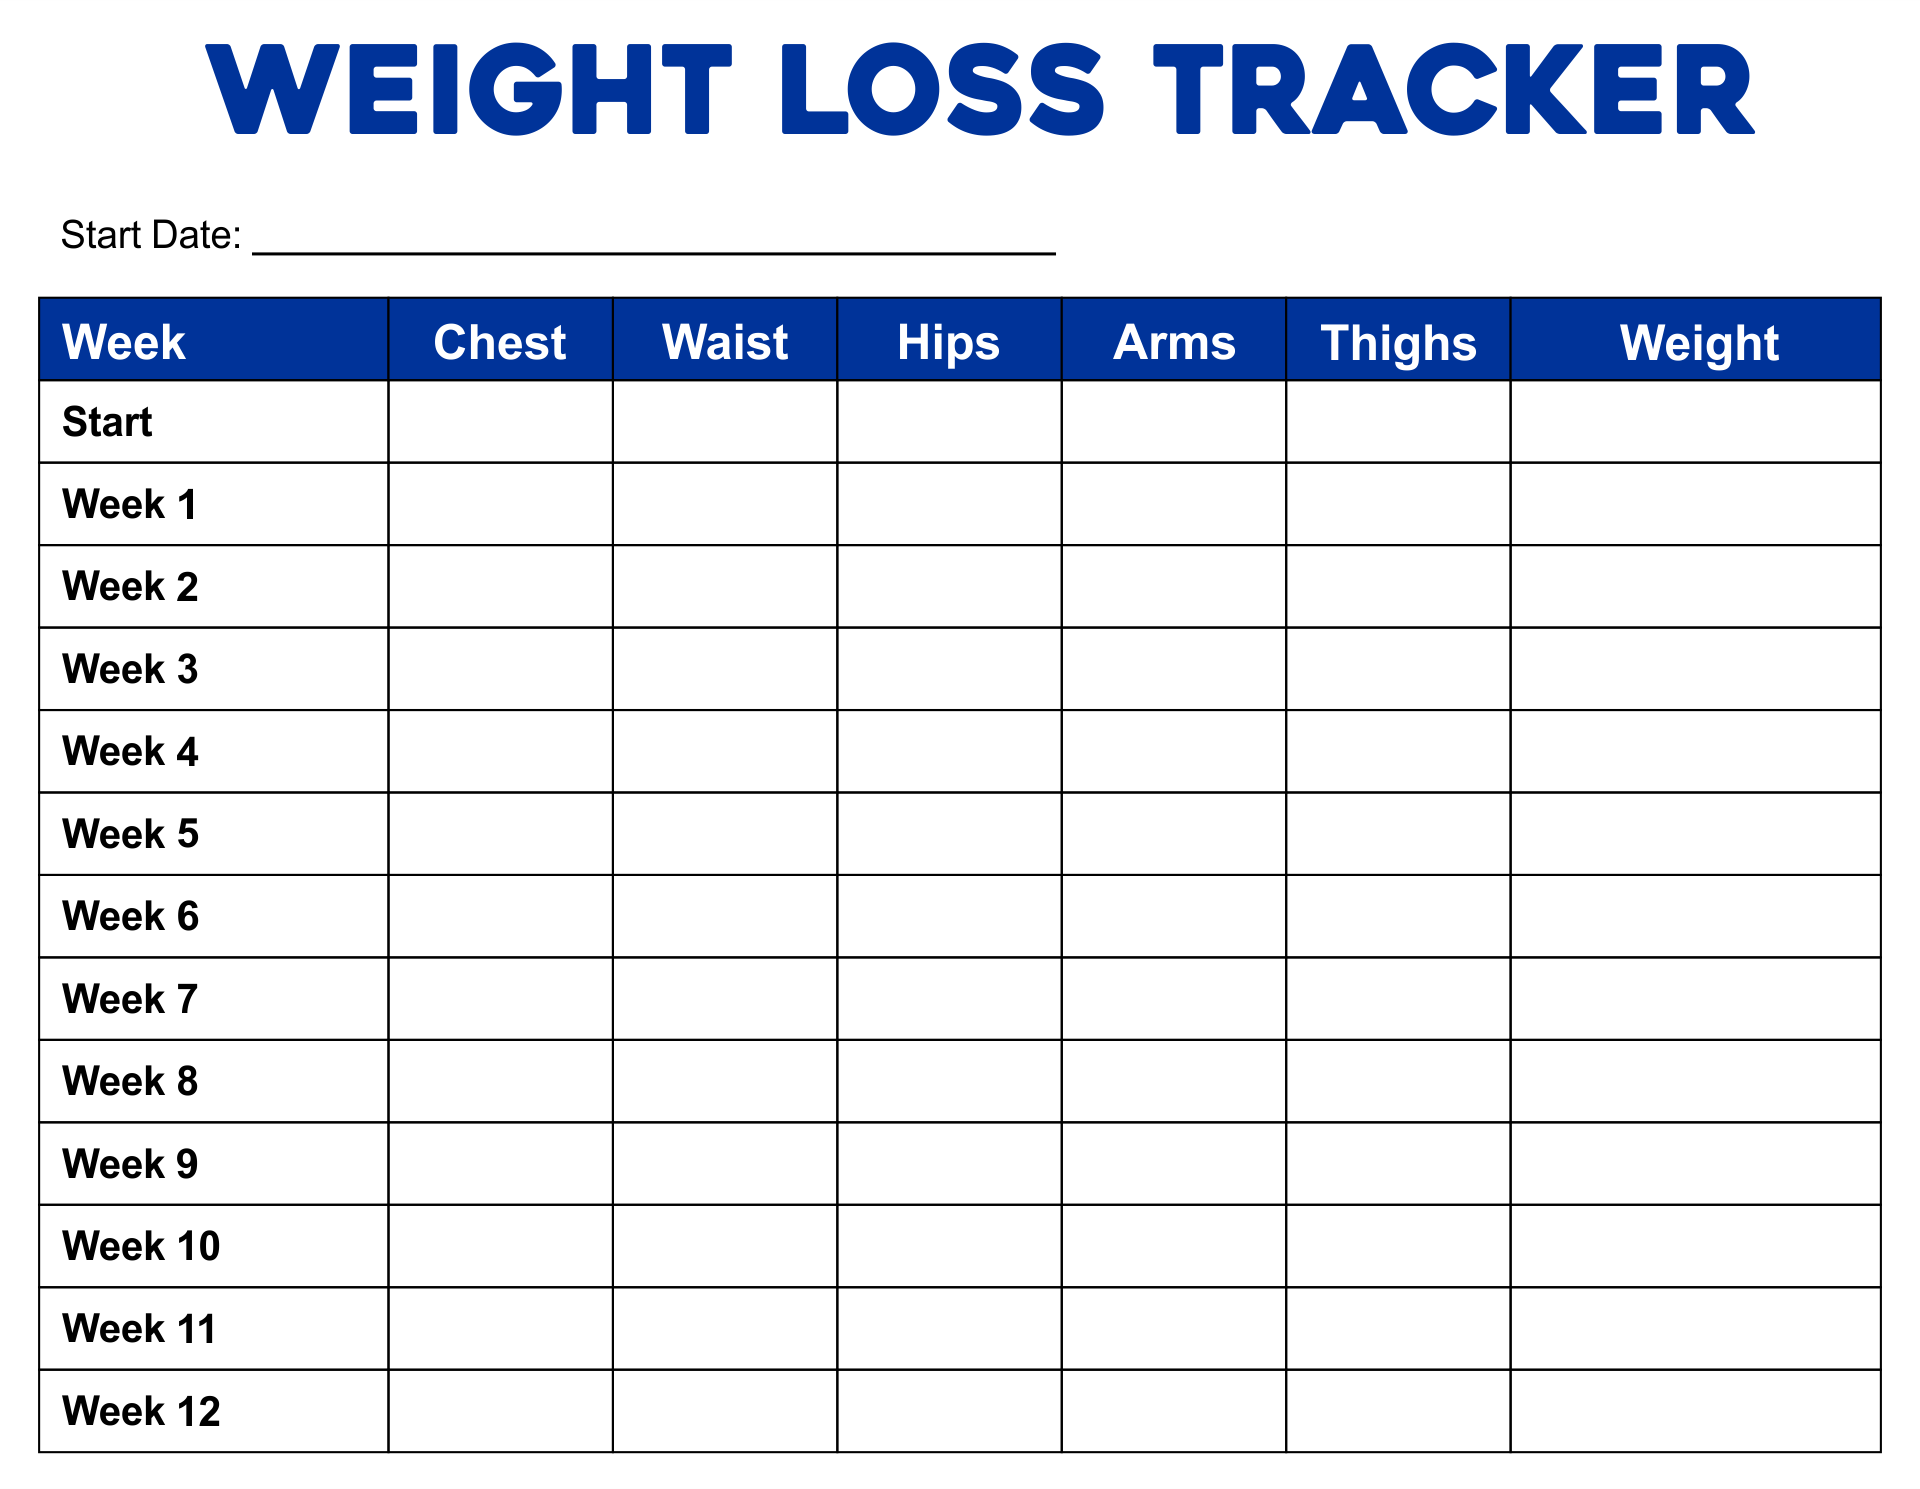 Full Size of Template Liquor Inventory Control Spreadsheet Create A New In Google Docs Weight Loss Tracker